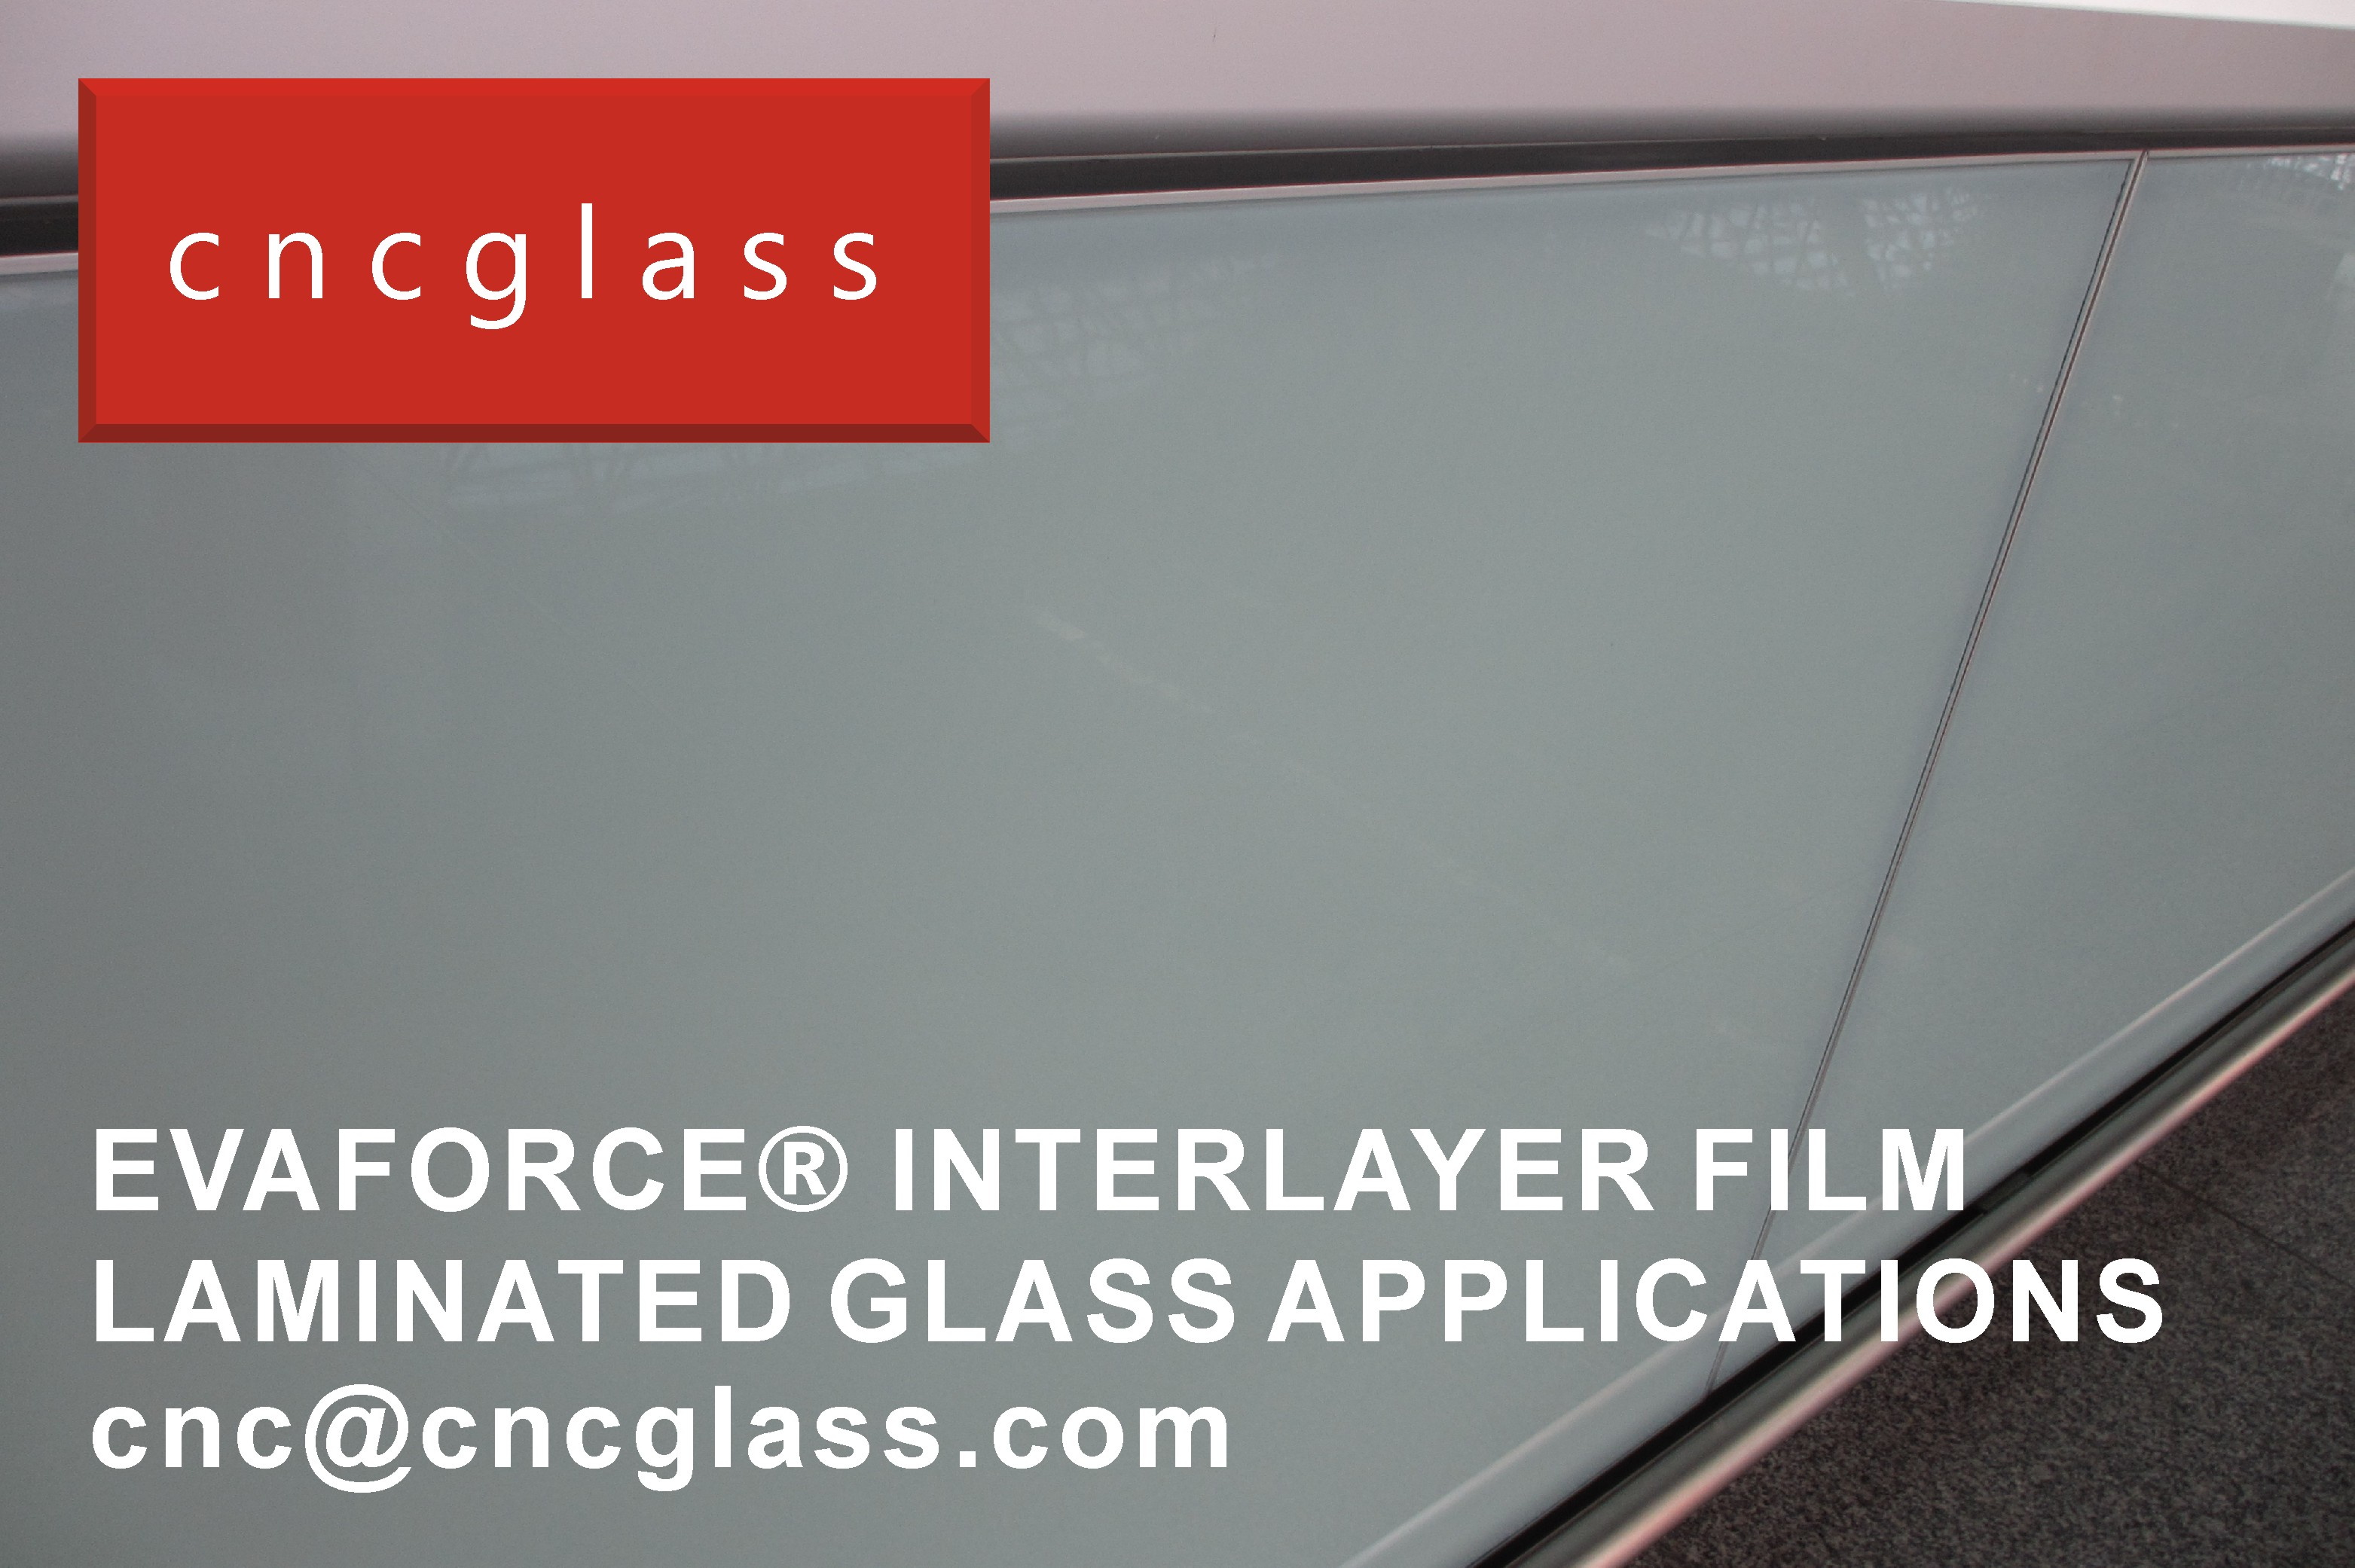 EVAFORCE INTERLAYER FILM LAMINATED GLASS APPLICATIONS (5)